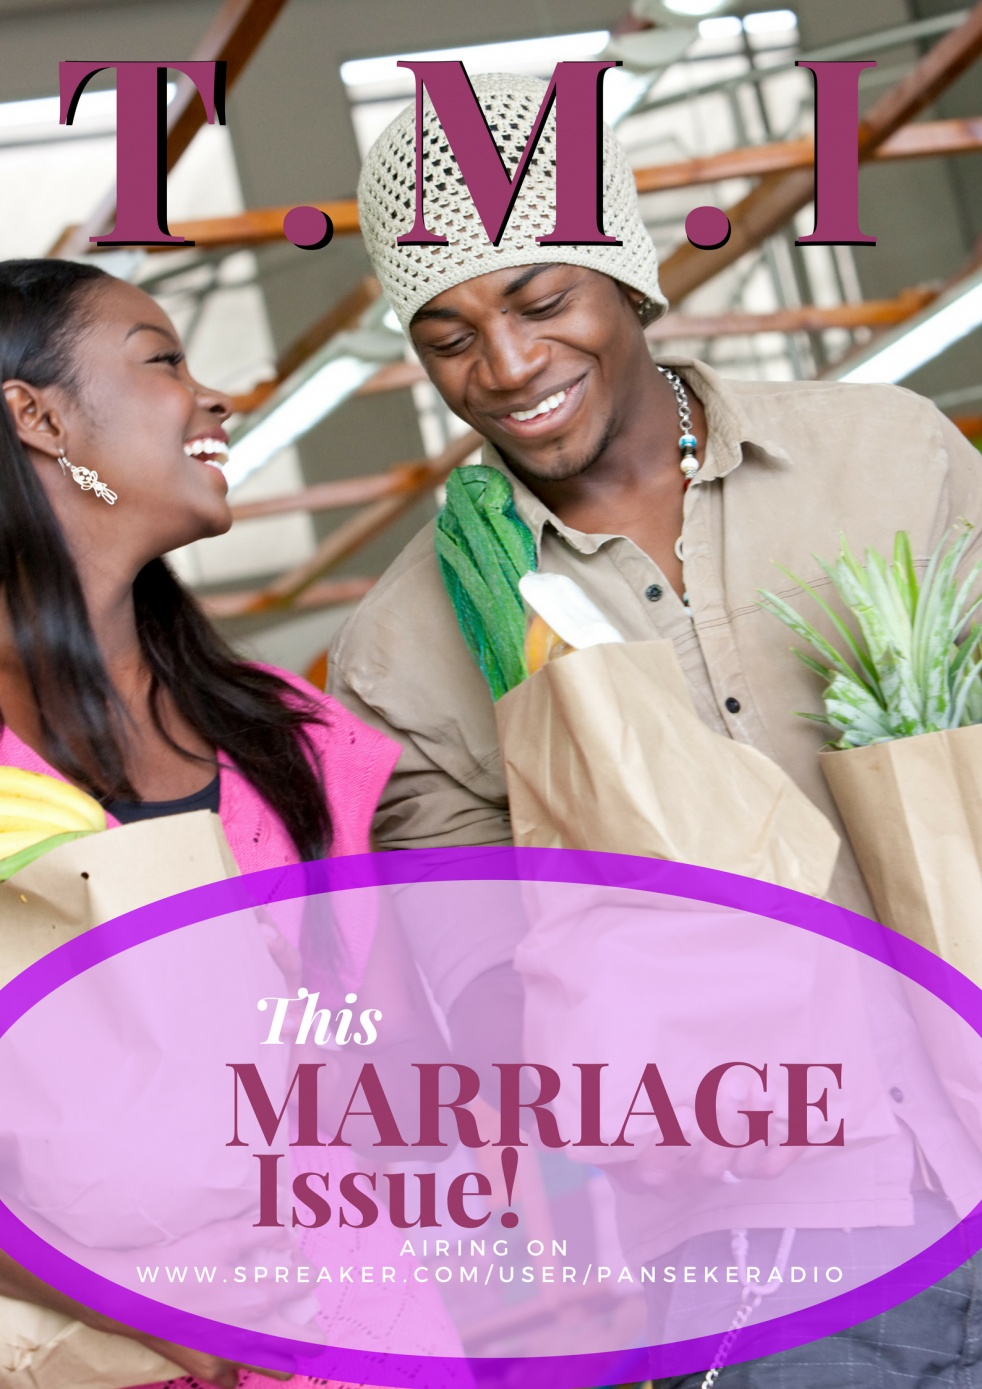 TMI (This Marriage Issue) - show cover